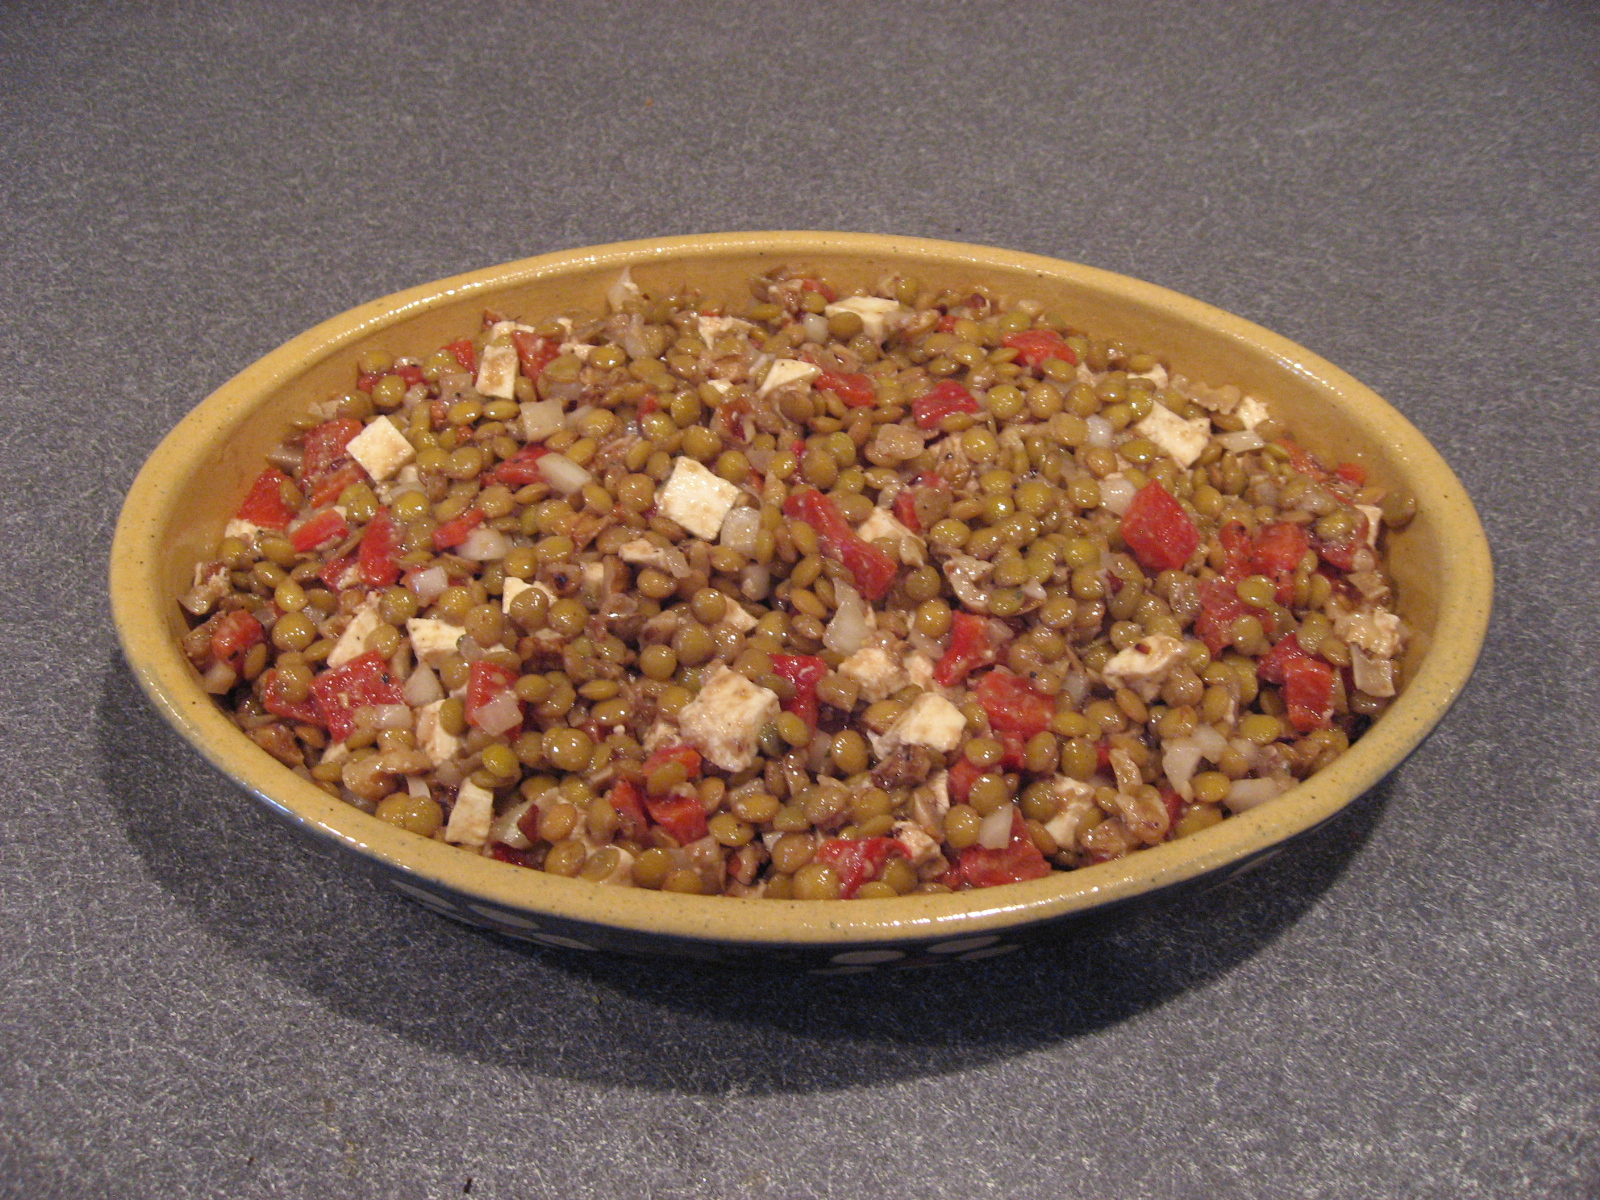 Lentil Salad with Smoked Mozzarella and Walnuts